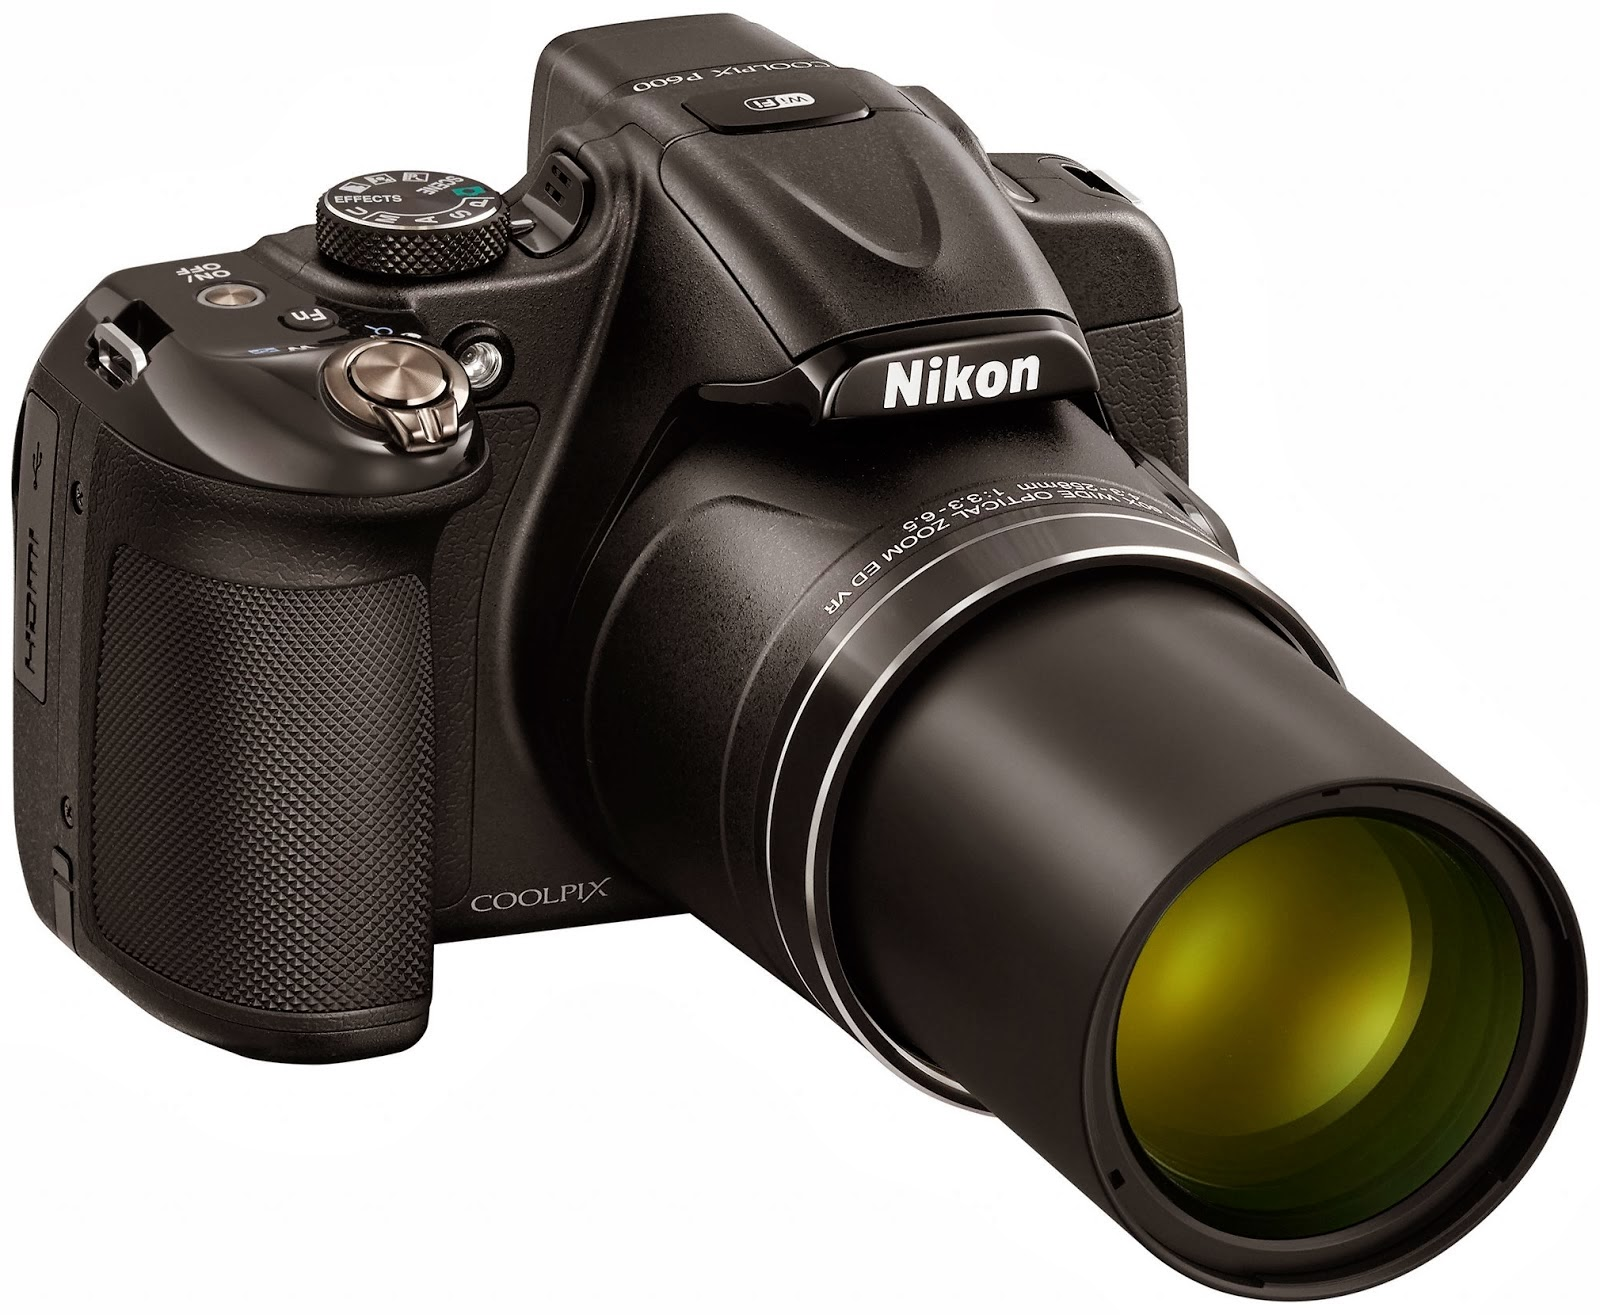 bridge camera, Full HD, Nikon Coolpix P600, prosumer camera, scene mode, social media, superzoom camera, vari-angle LCD, vibration reduction, Wi-Fi,